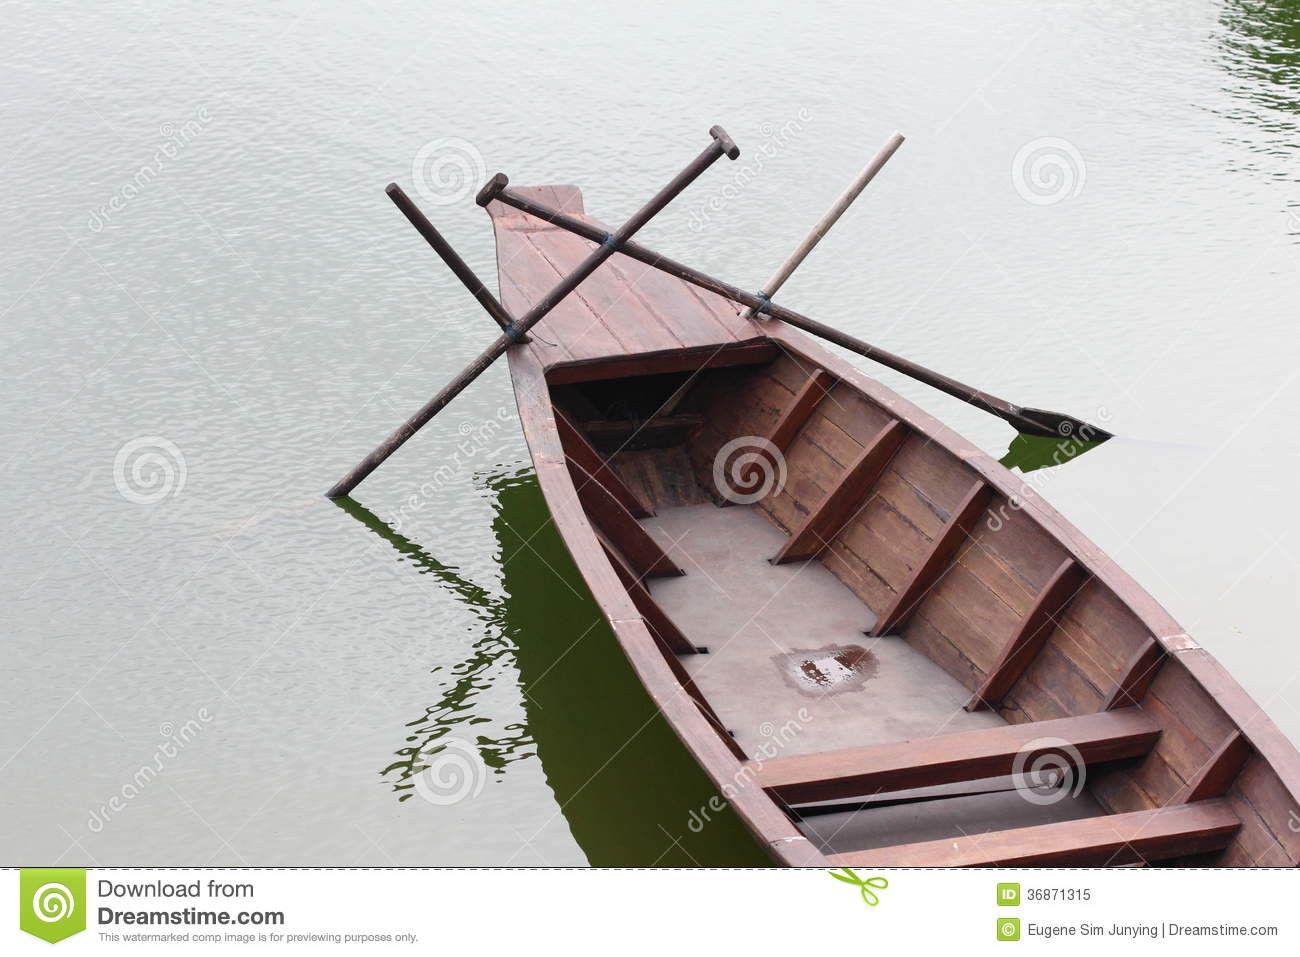 Sampan Boat Plans images